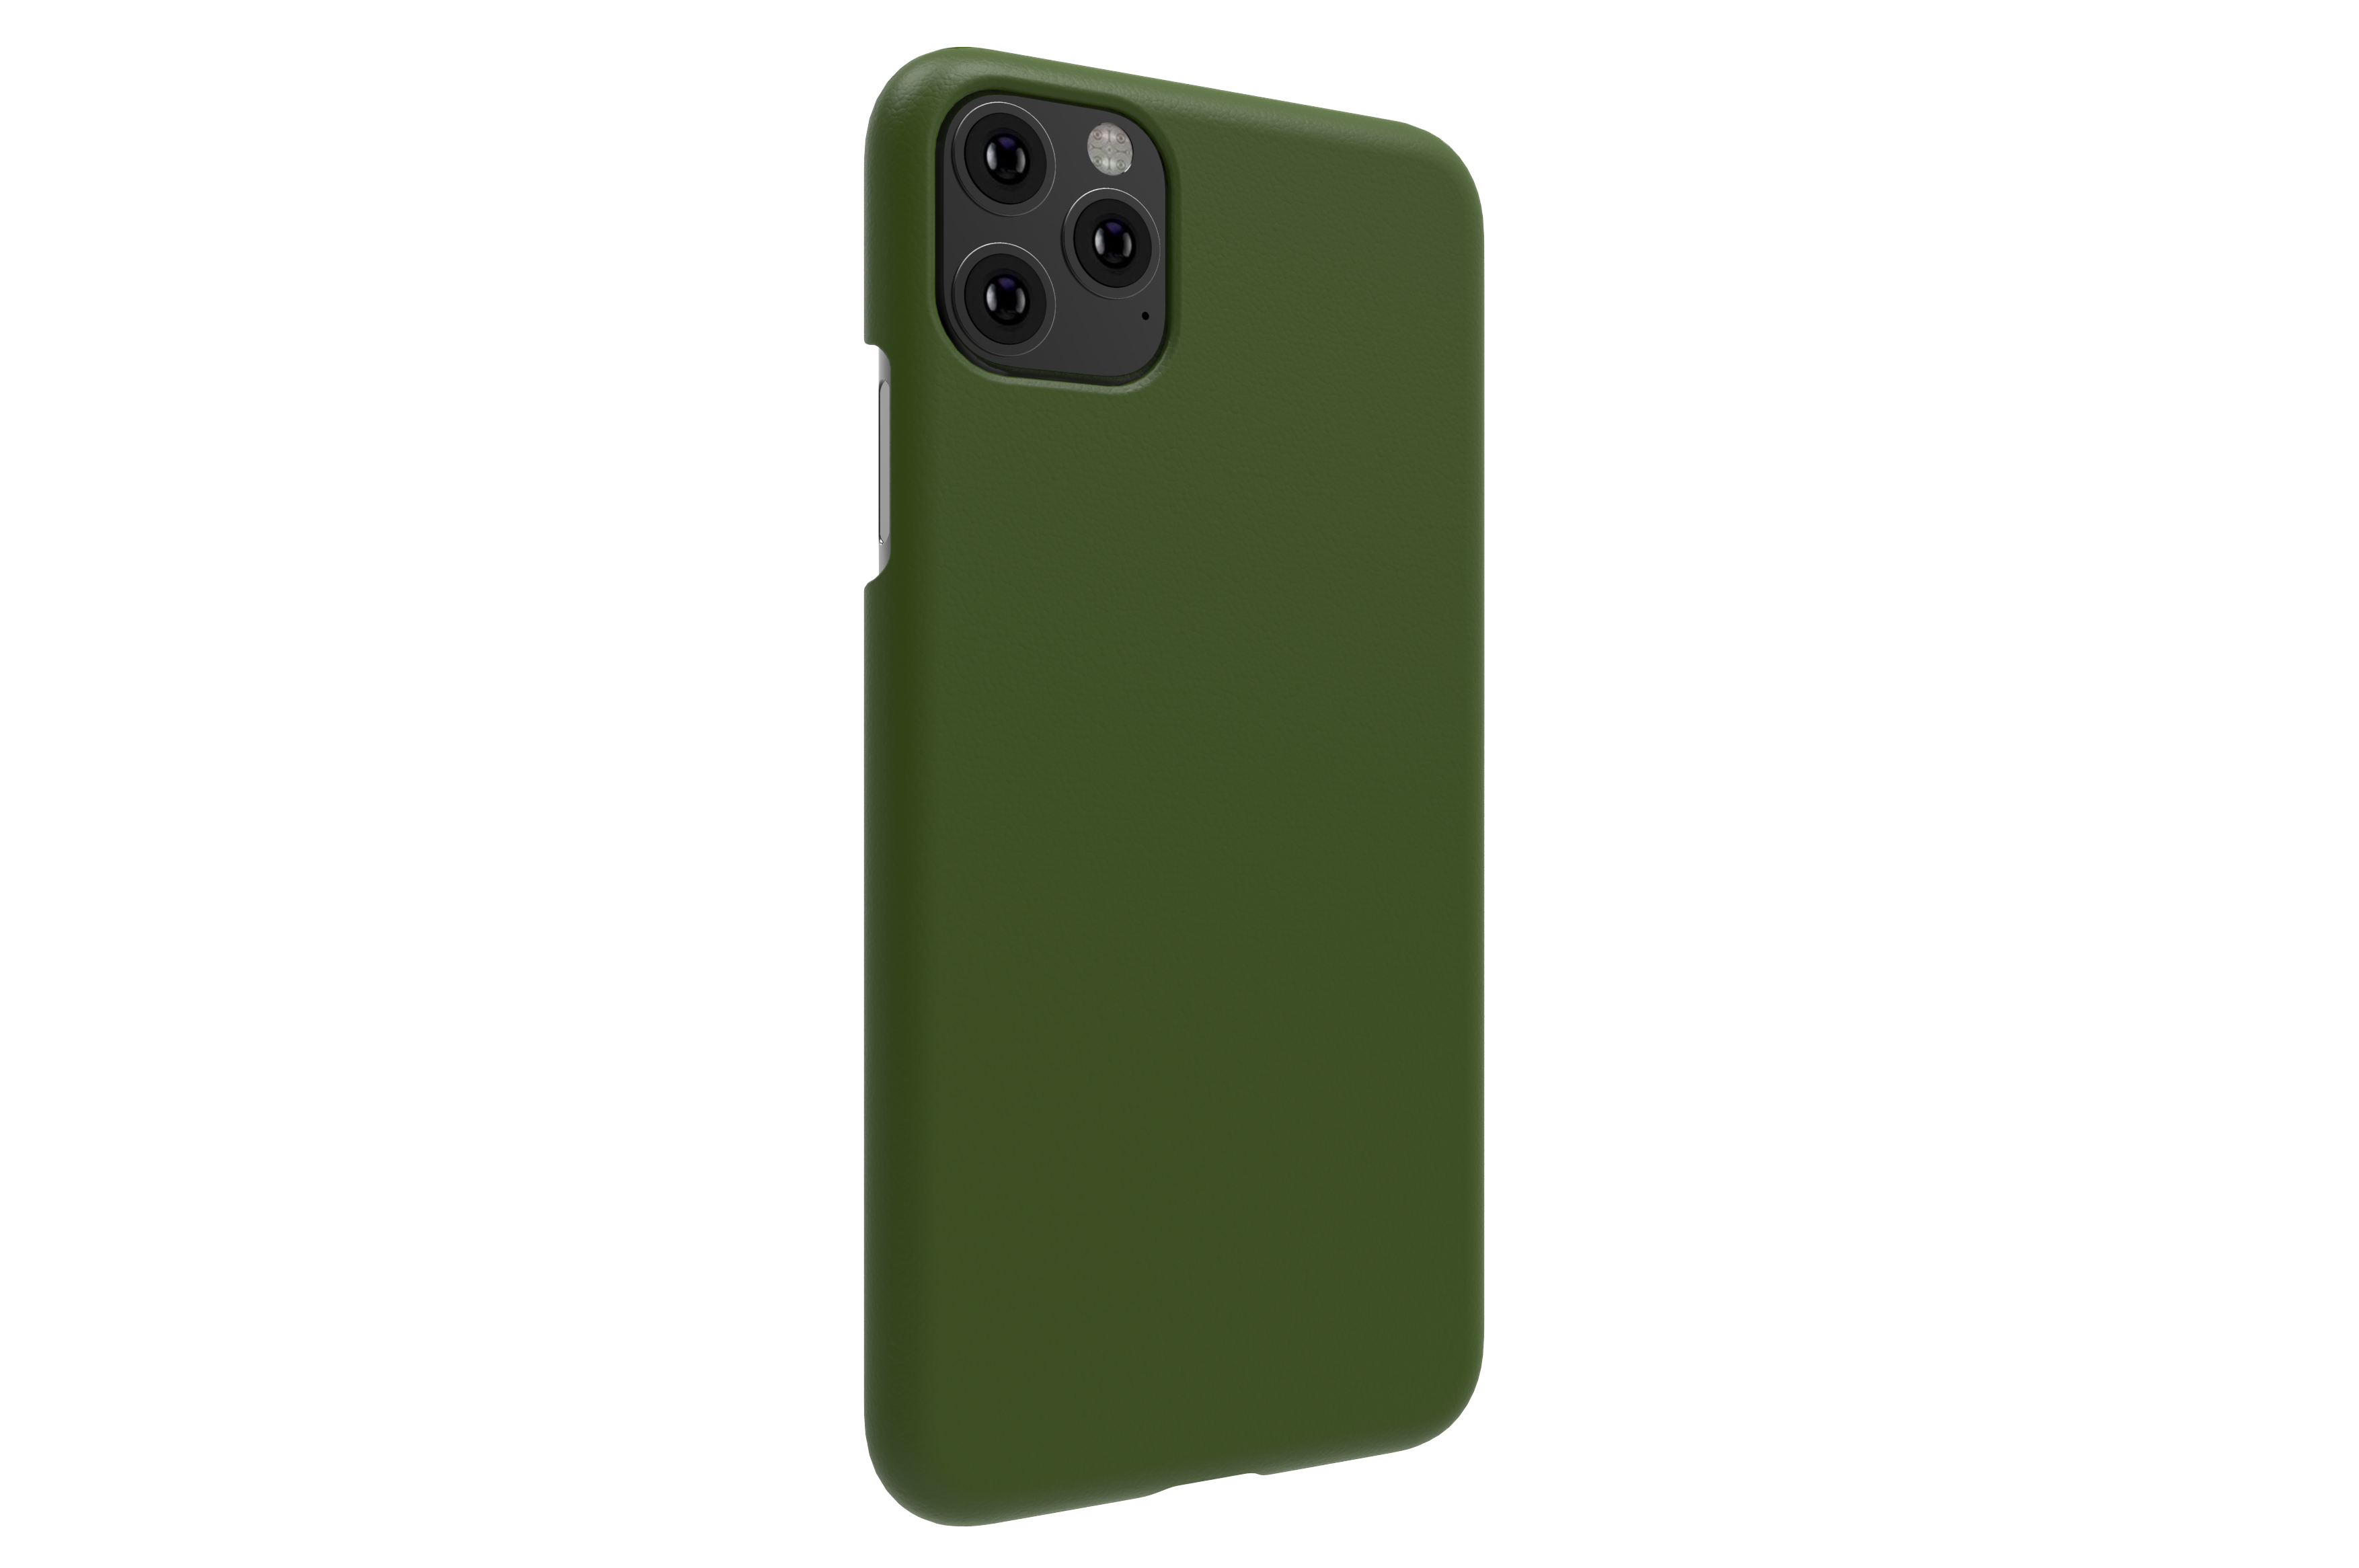 iphone11 pro max green-3